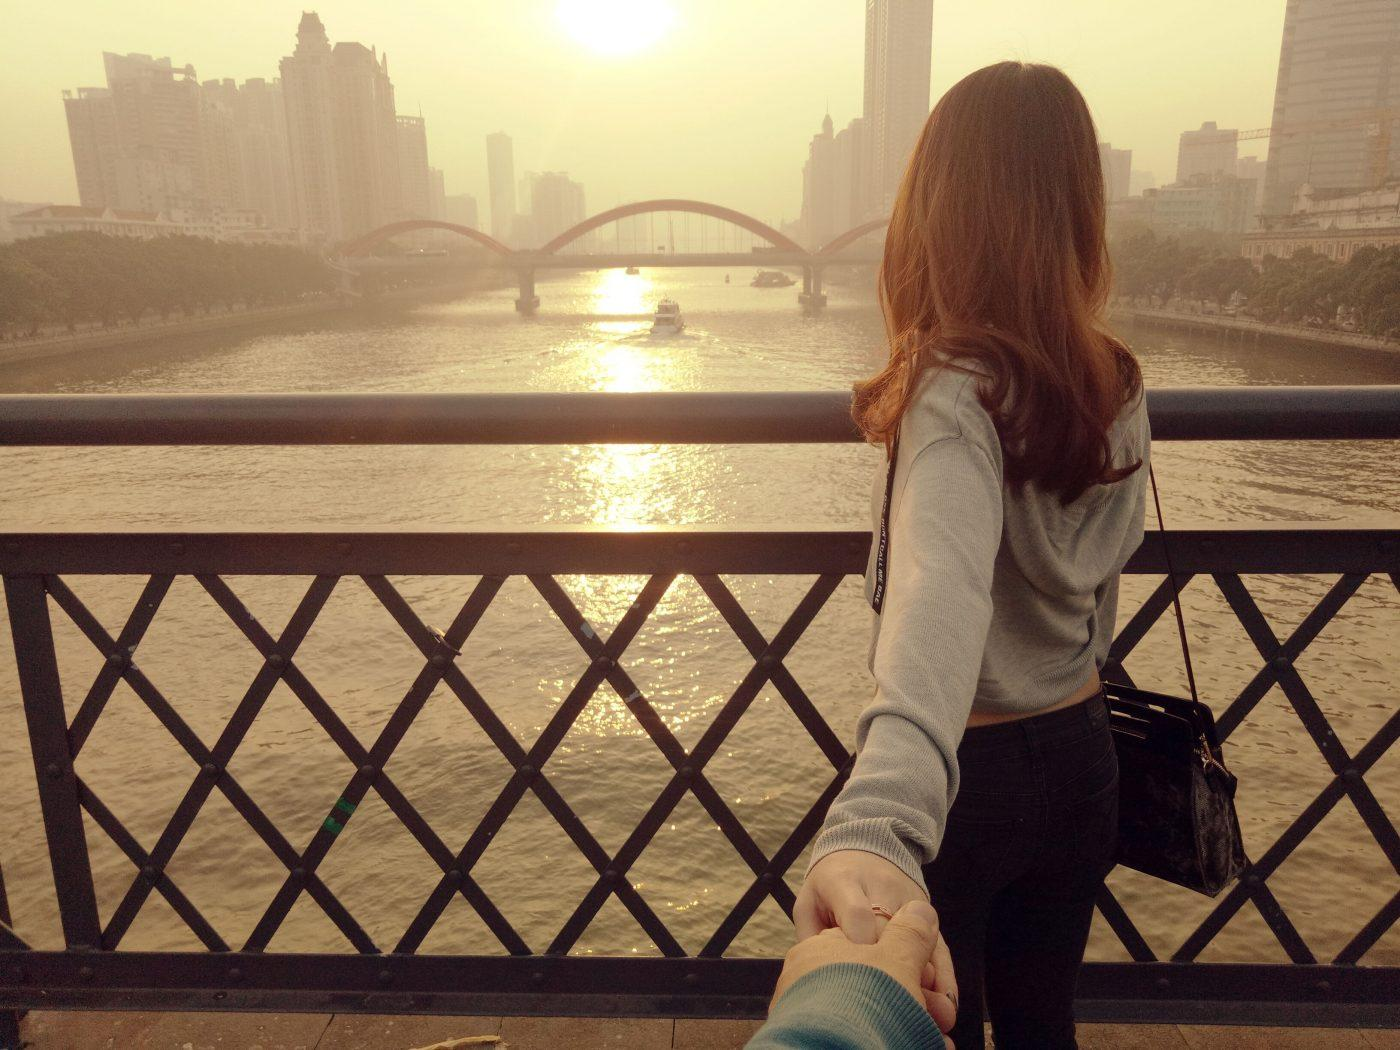 guangzhou bridge hold hands female